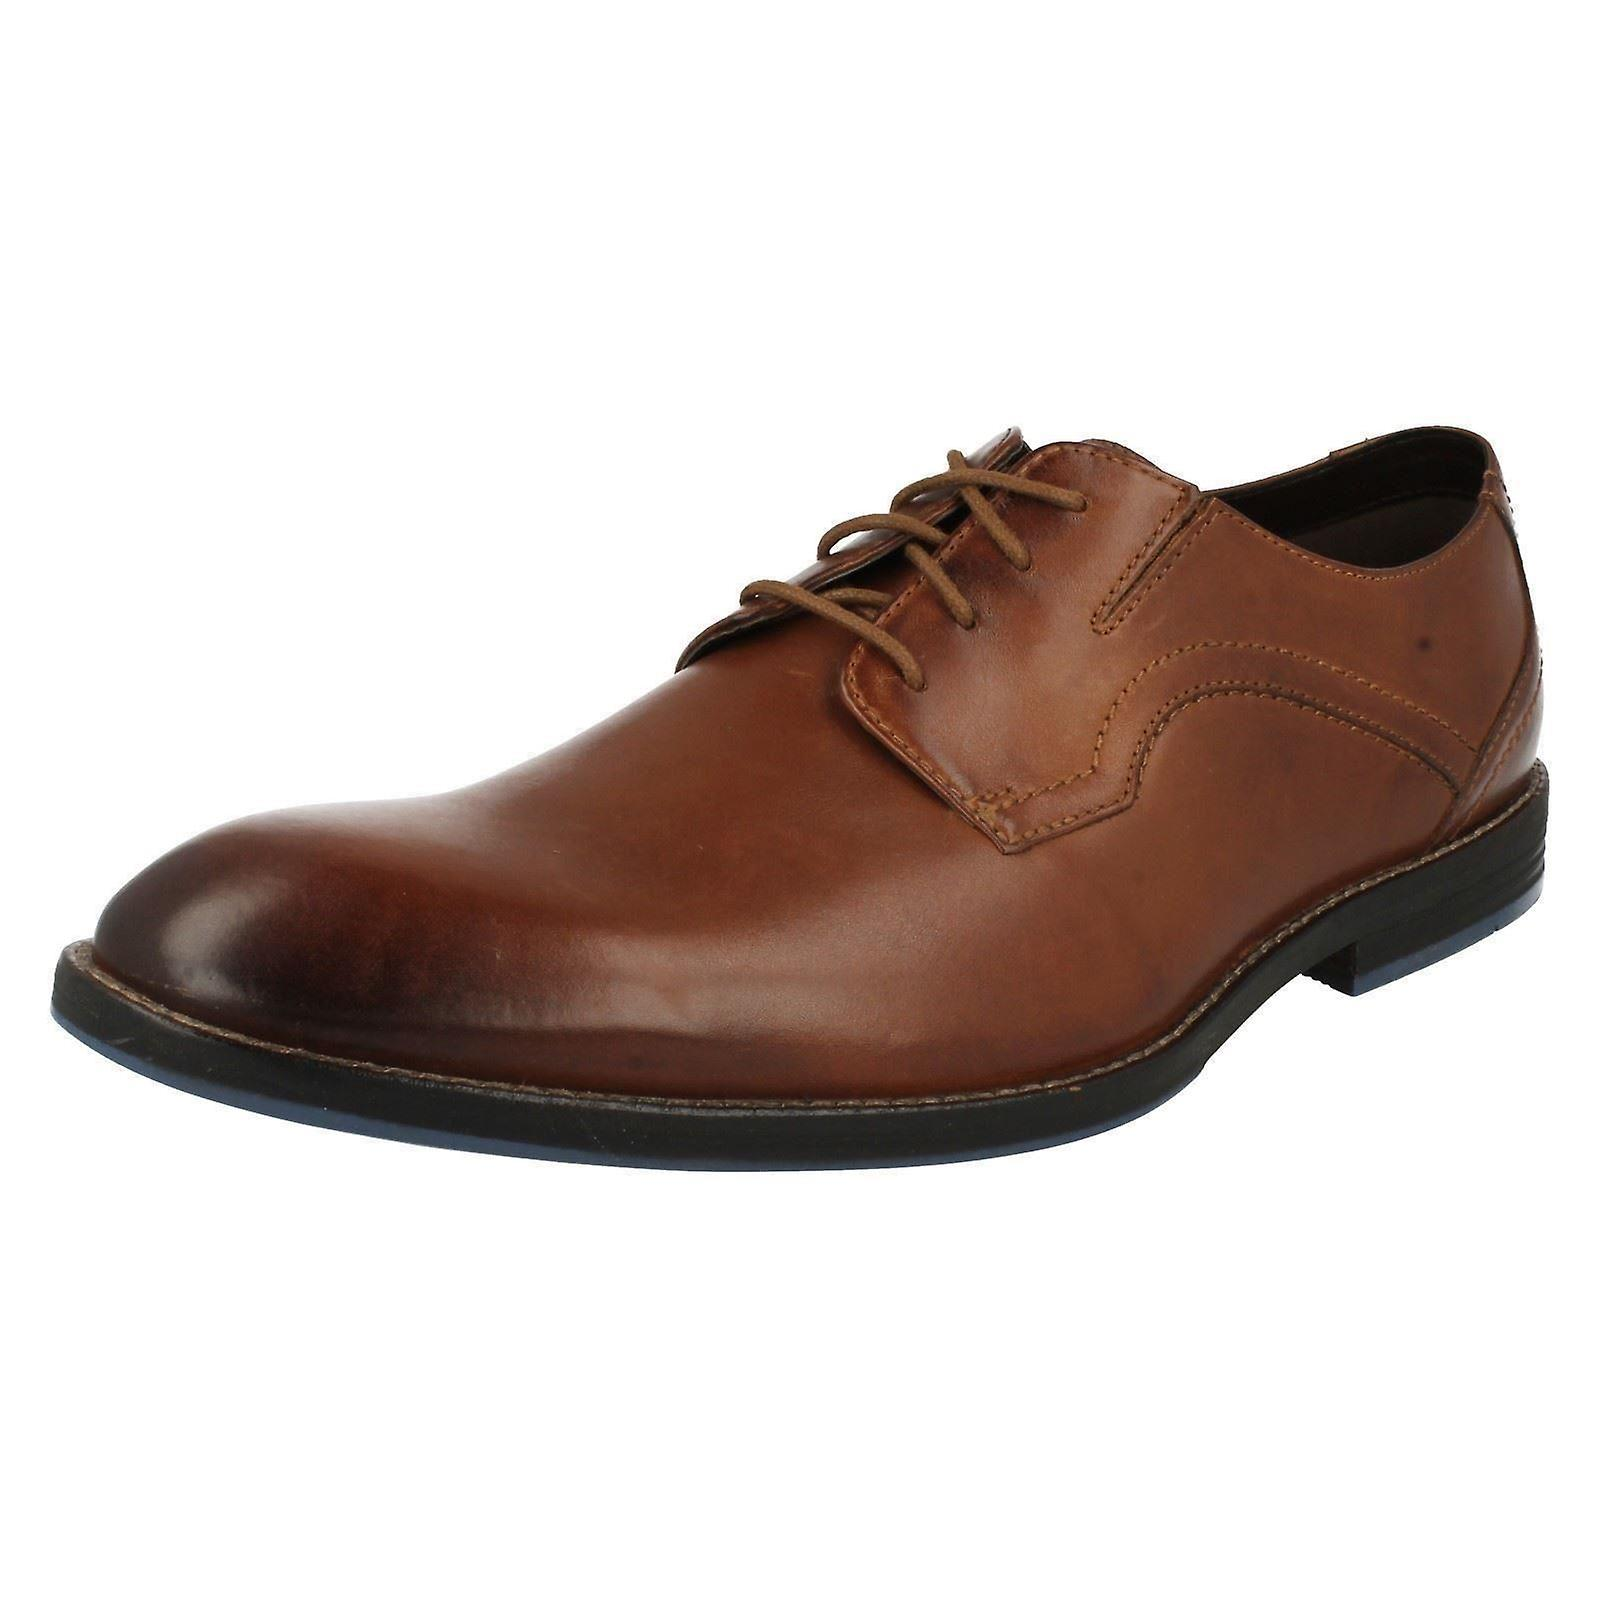 Shoes Mens Prangley Formal Clarks Walk TqHqpSXw